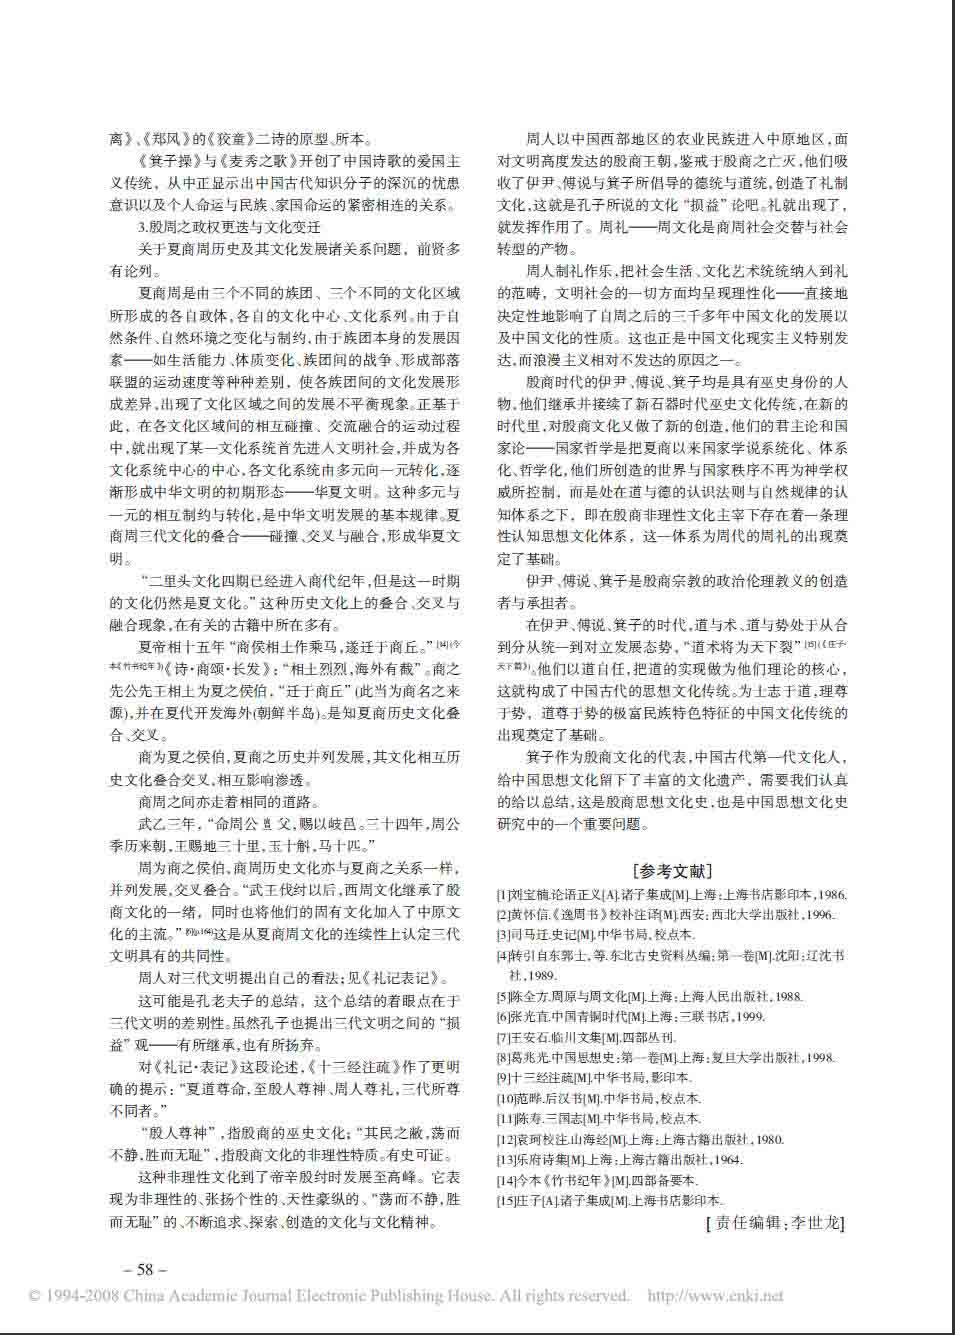 <span style='color:#000000;font-size:12px;font-style:none;font-weight:none;text-decoration:none'>箕子论-----张碧波</span>